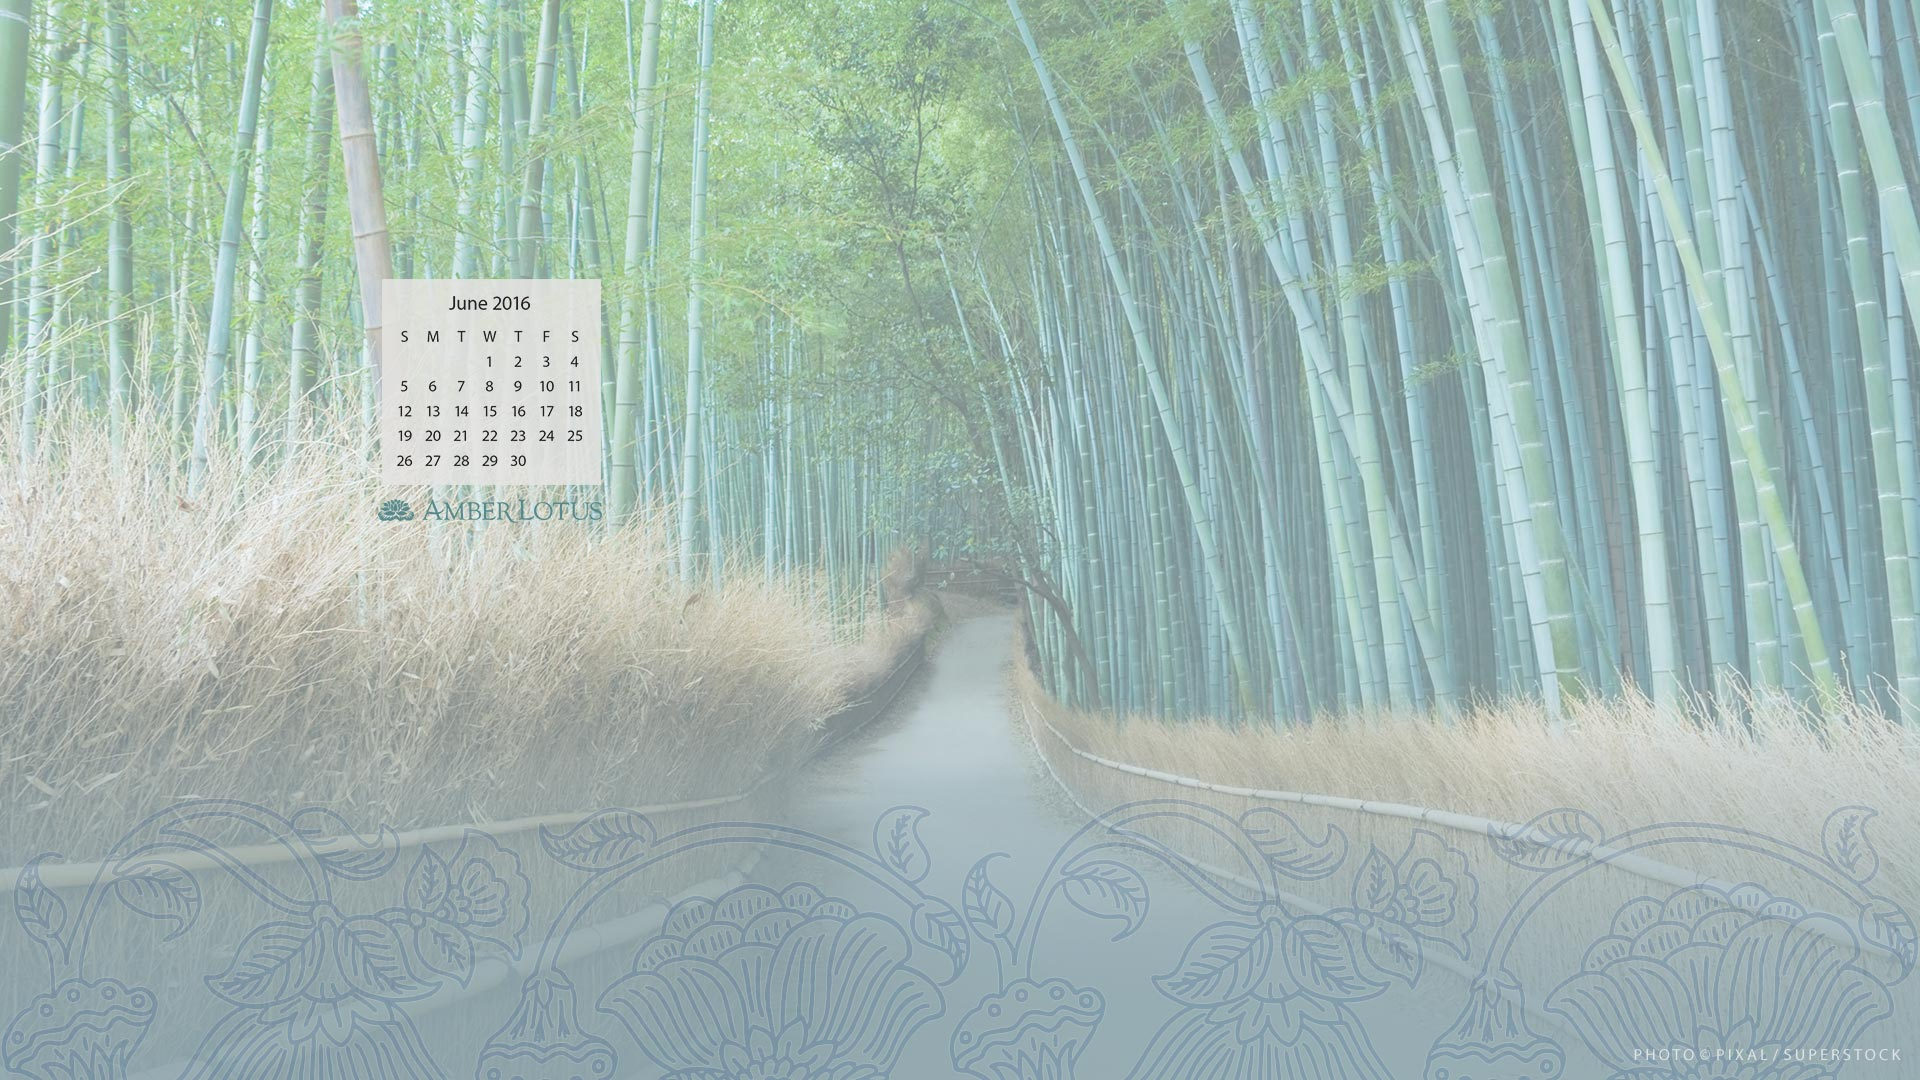 Desktop Wallpaper Calendar — June 2016 — Free to Download - Amber ...